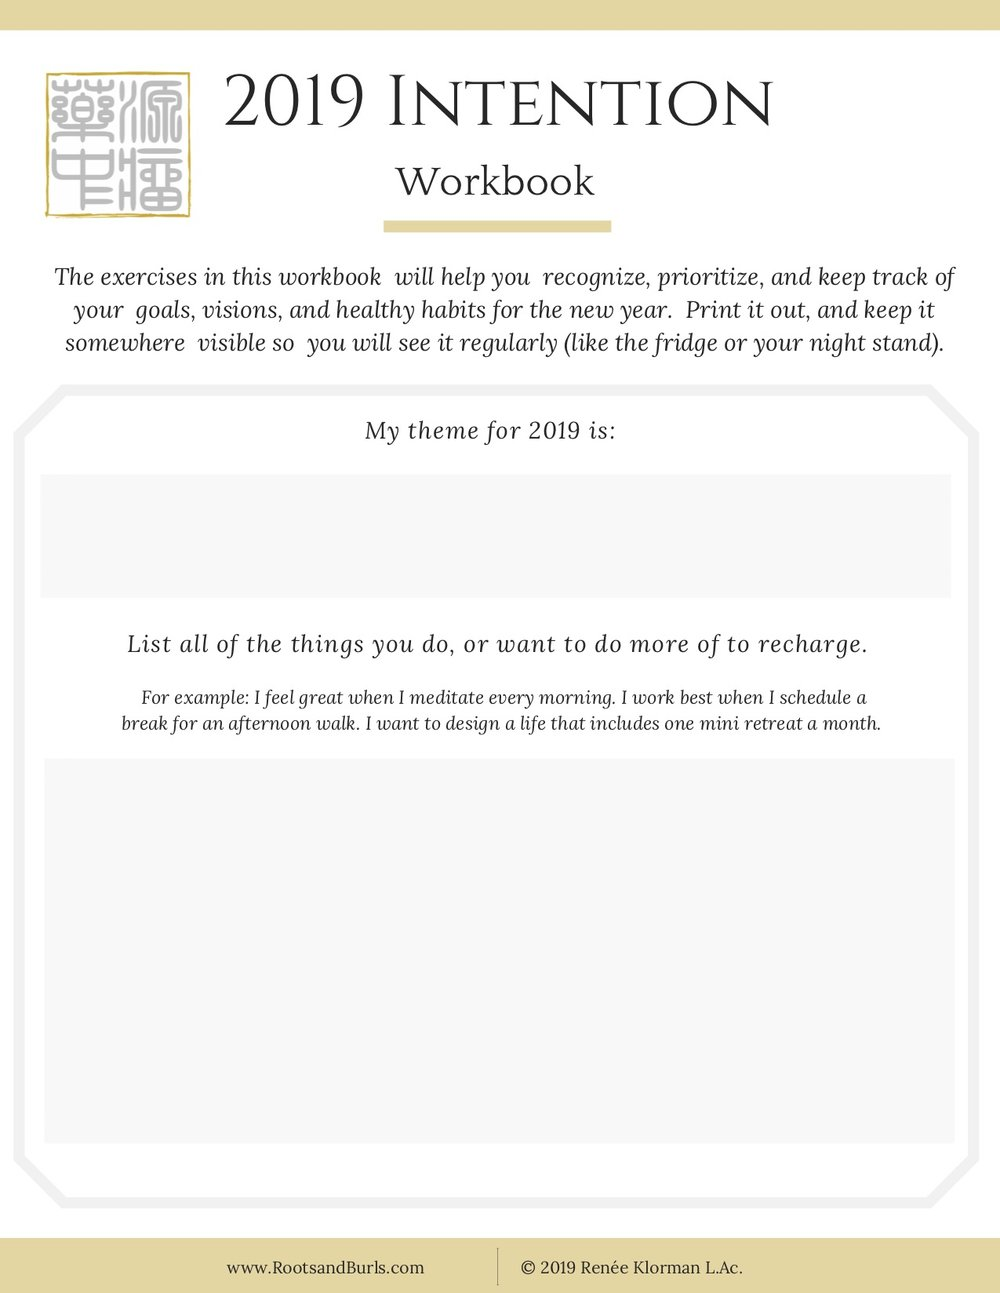 2019 Intention Workbook by Renee Klorman, LAc.jpg